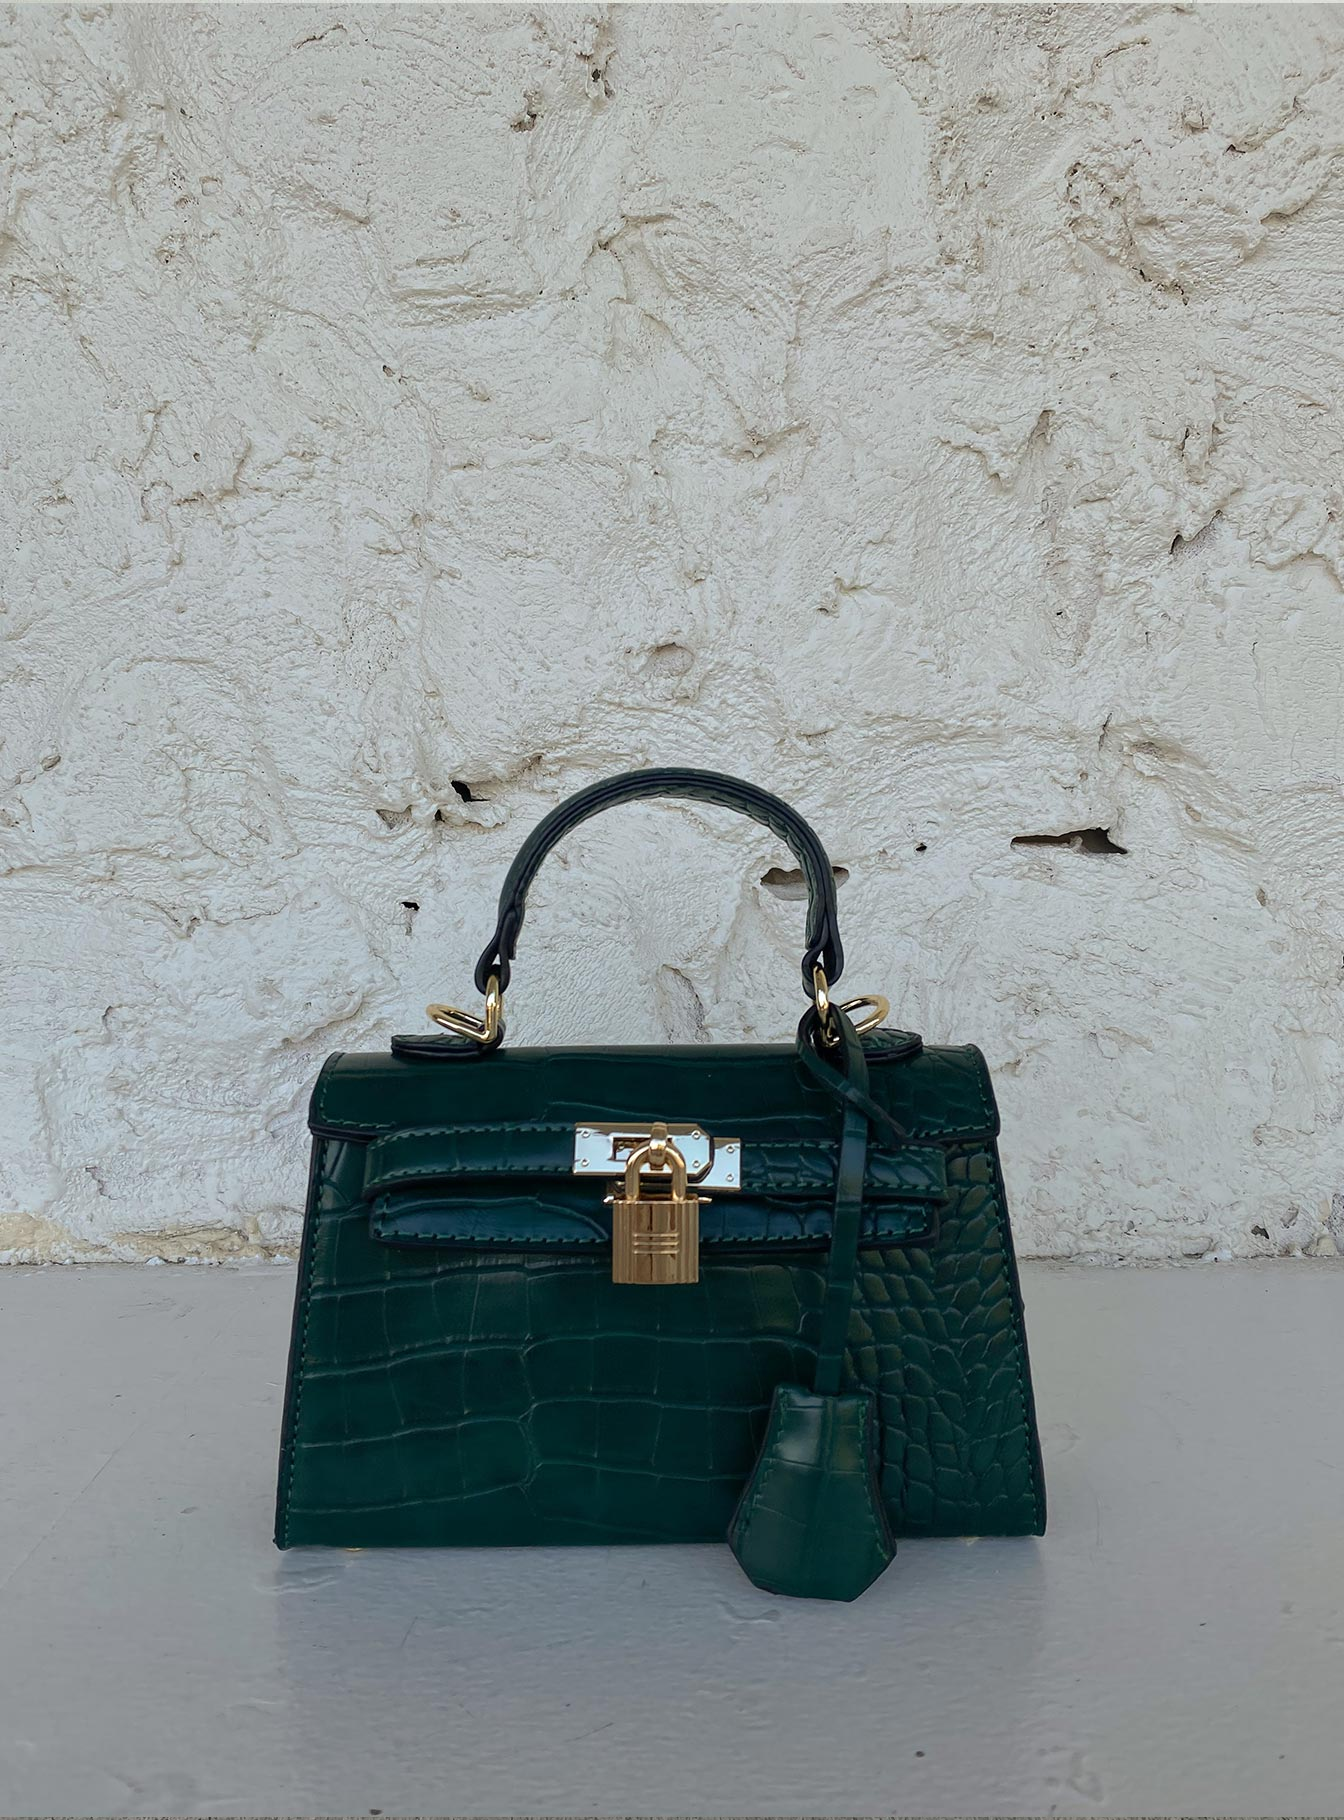 Peta & Jain Hedi Mini Top Handle Bag Green Croc